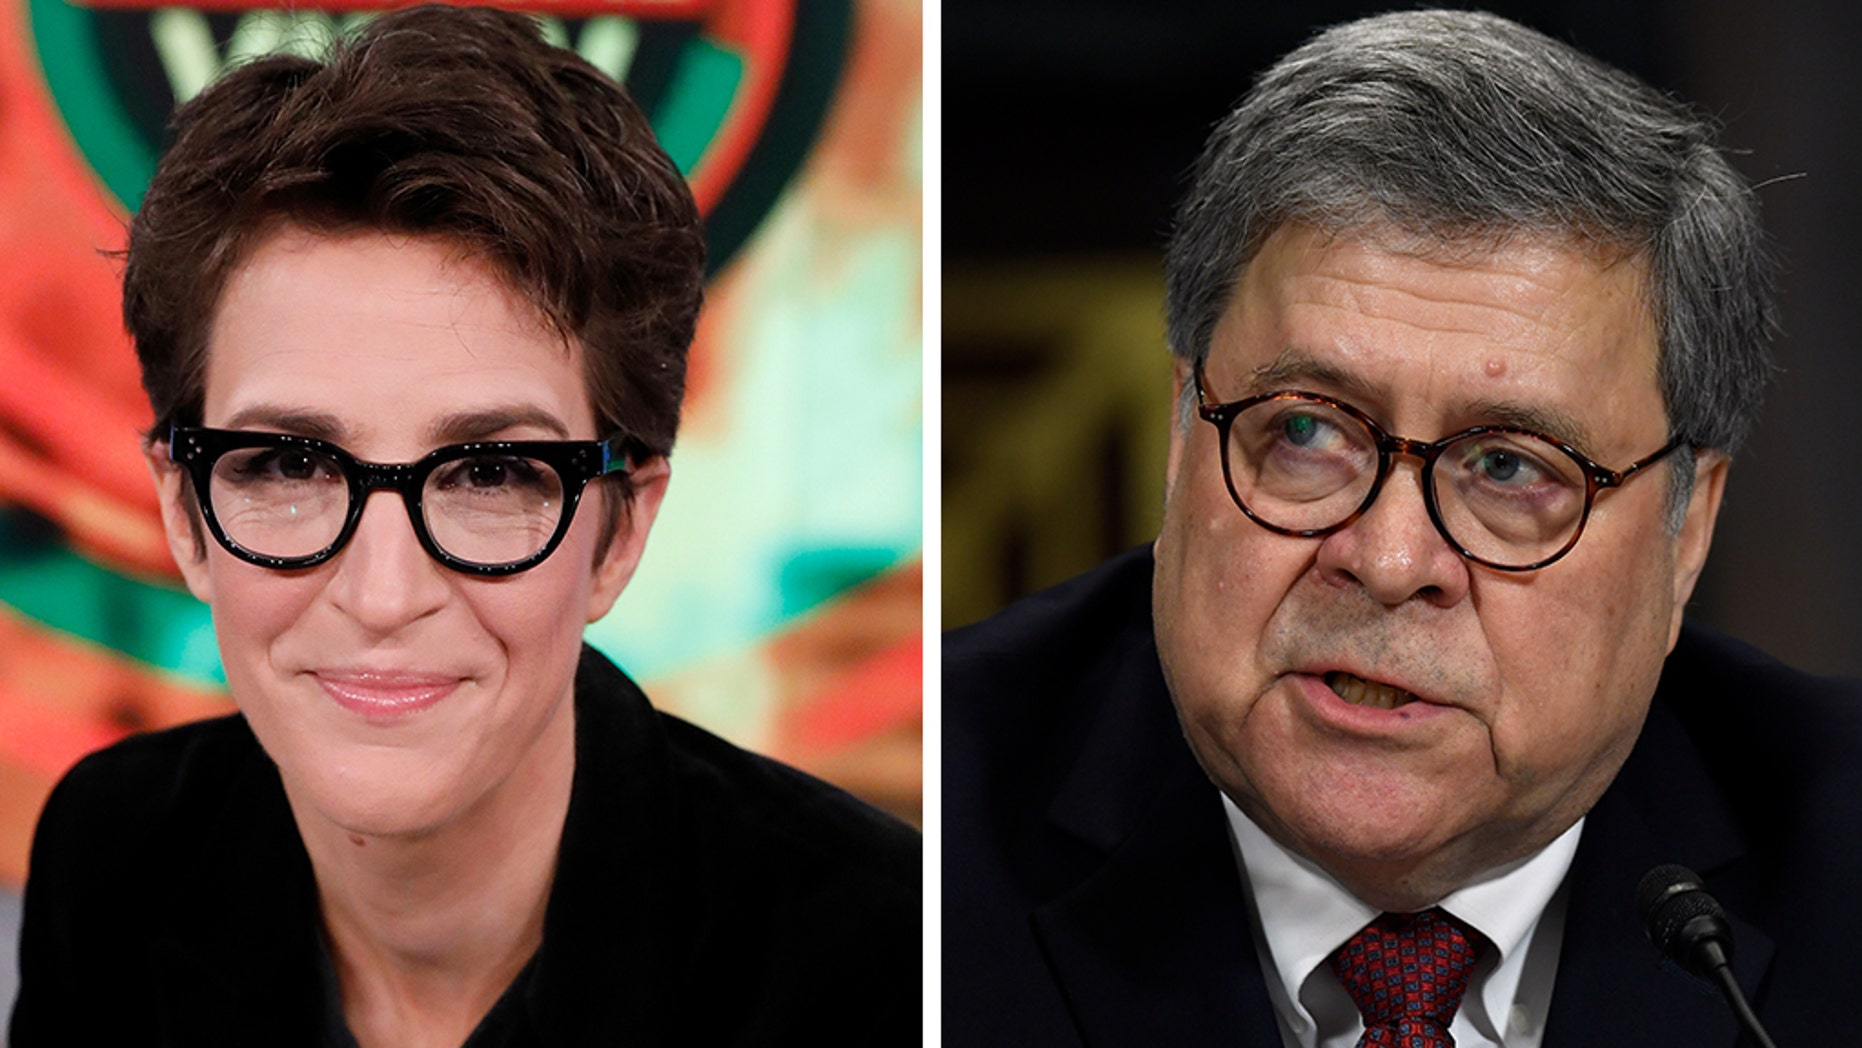 """A report found MSNBC's """"Rachel Maddow Show"""" and certain Democrats used a misleading video to cast Attorney General Bill Barr in a negative light. (Getty/AP, File)"""